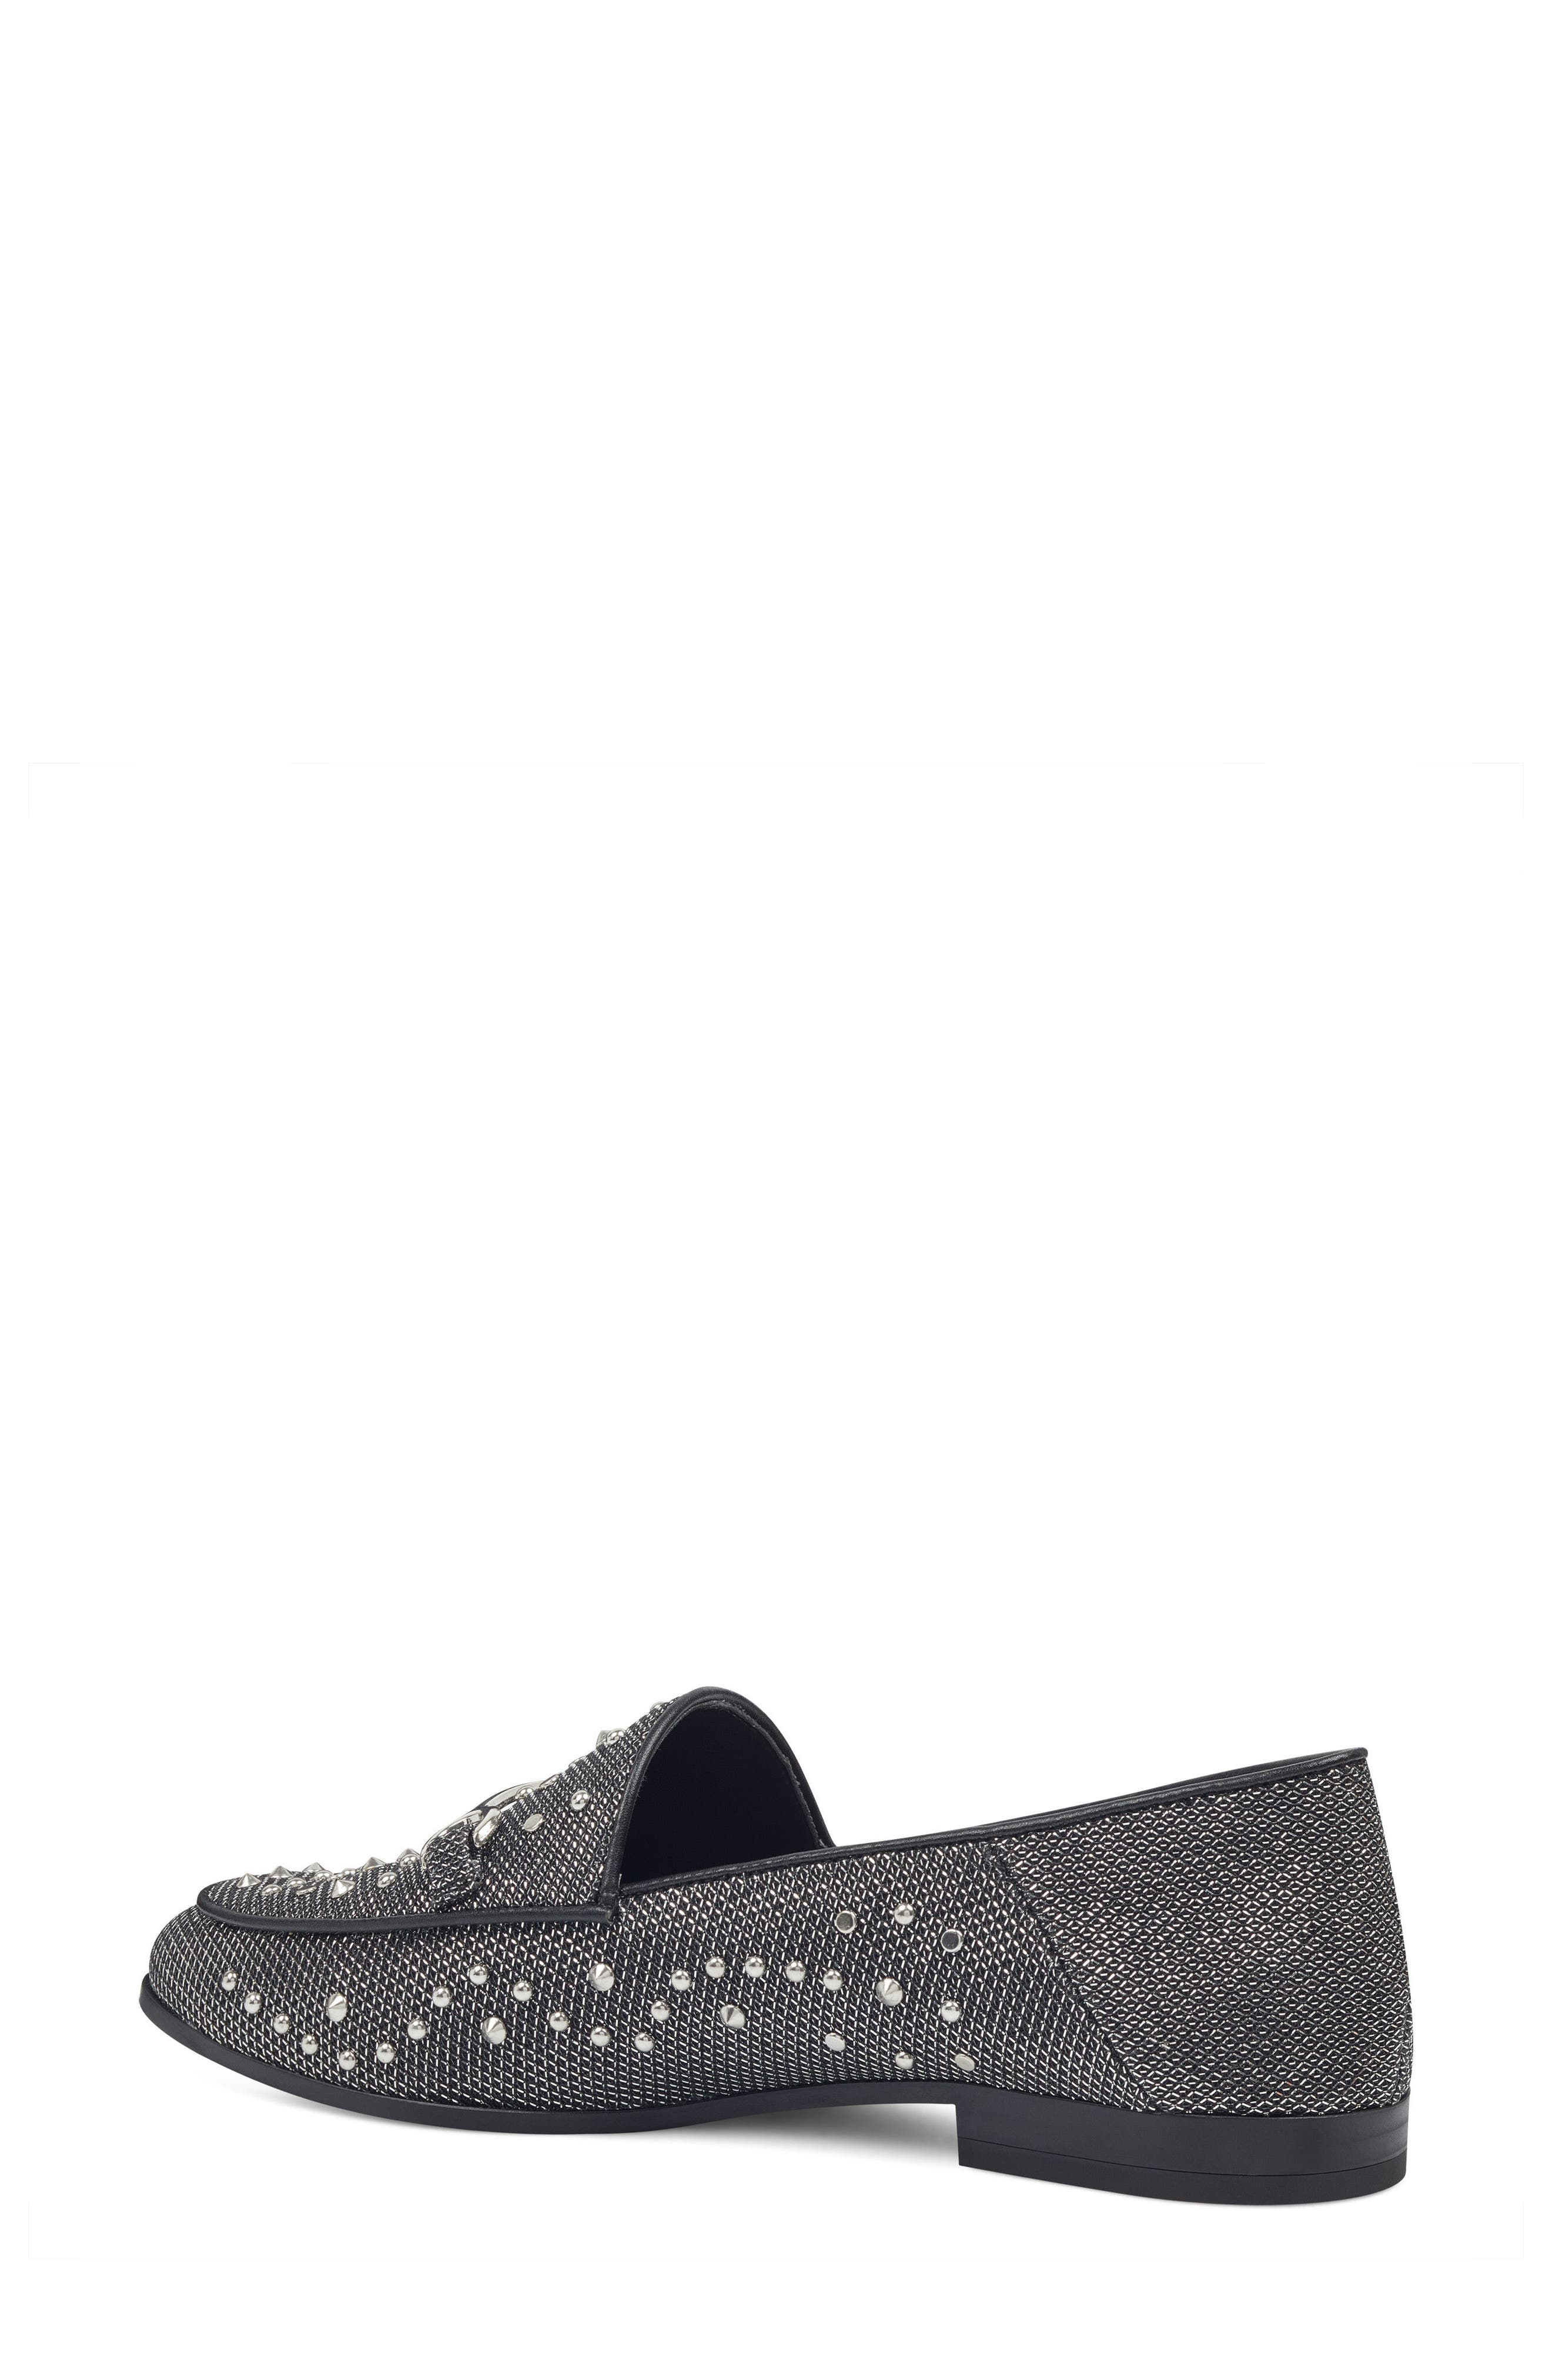 Westoy Studded Loafer,                             Alternate thumbnail 2, color,                             001